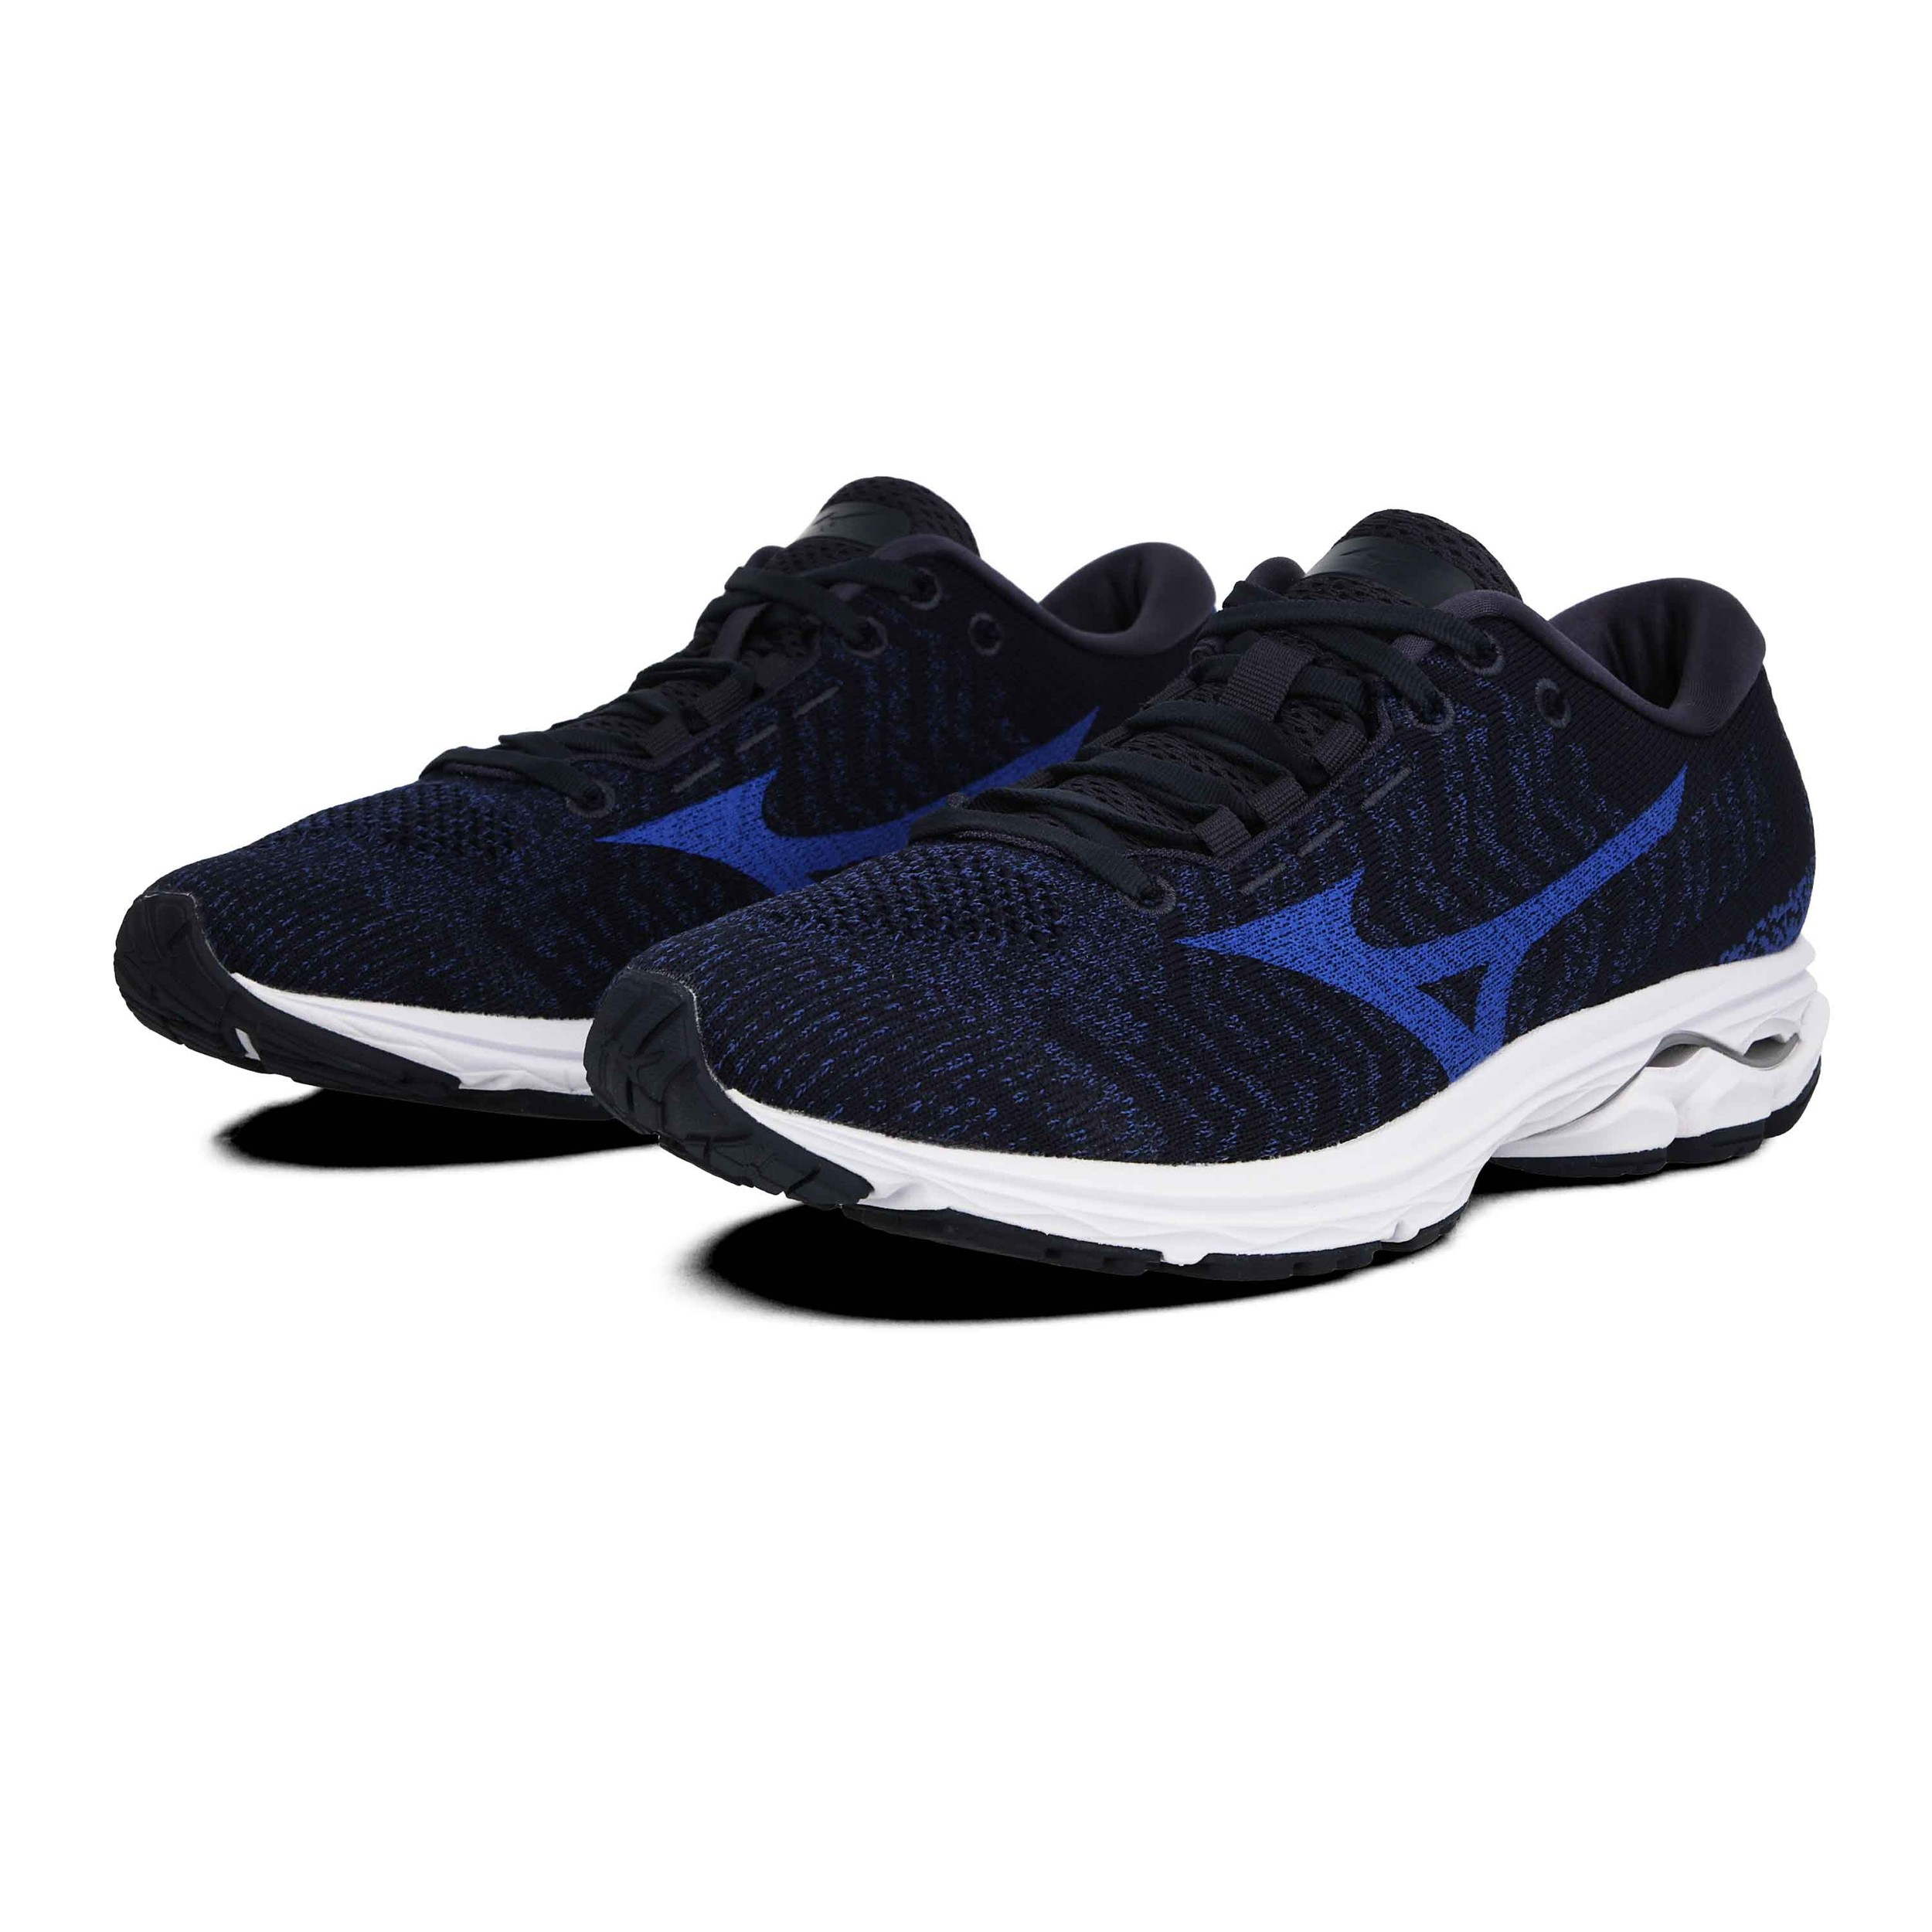 Mizuno Wave Rider Waveknit 3 Running Shoes - SS20